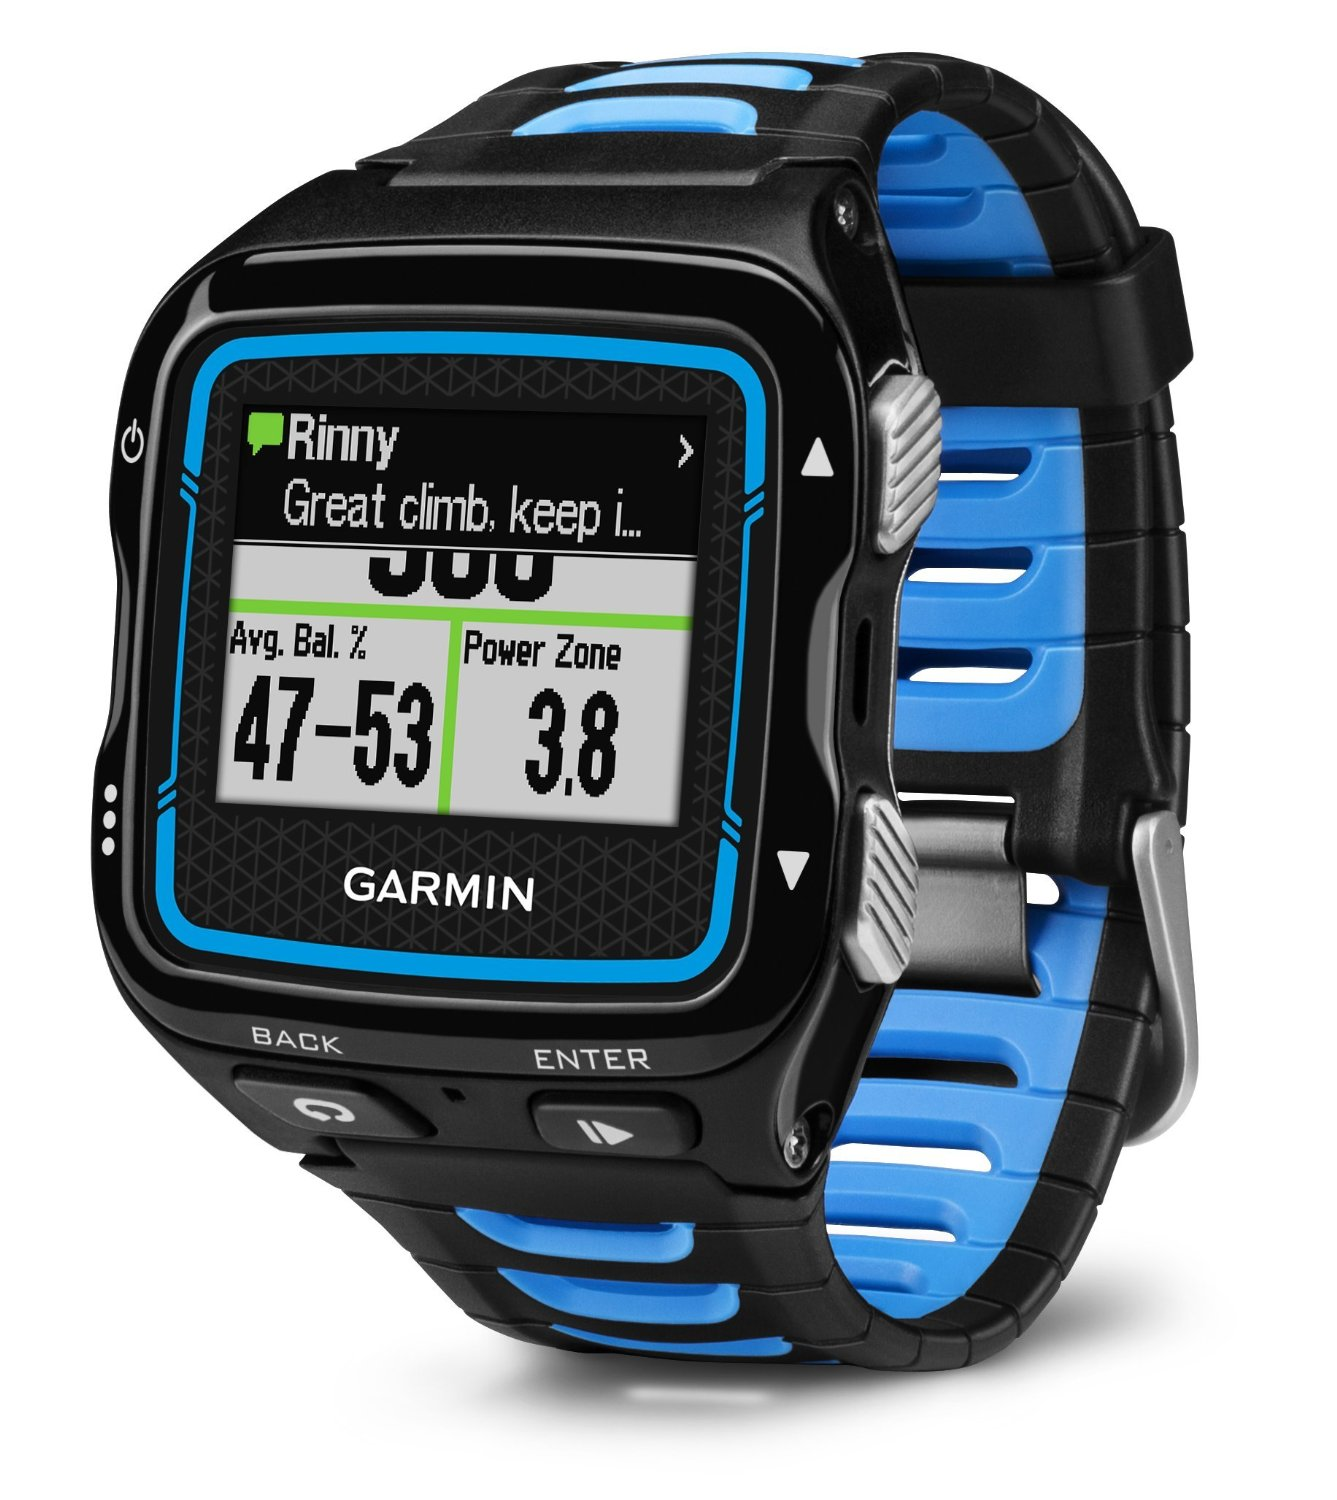 garmin forerunner 920xt test features erfahrungen preise. Black Bedroom Furniture Sets. Home Design Ideas